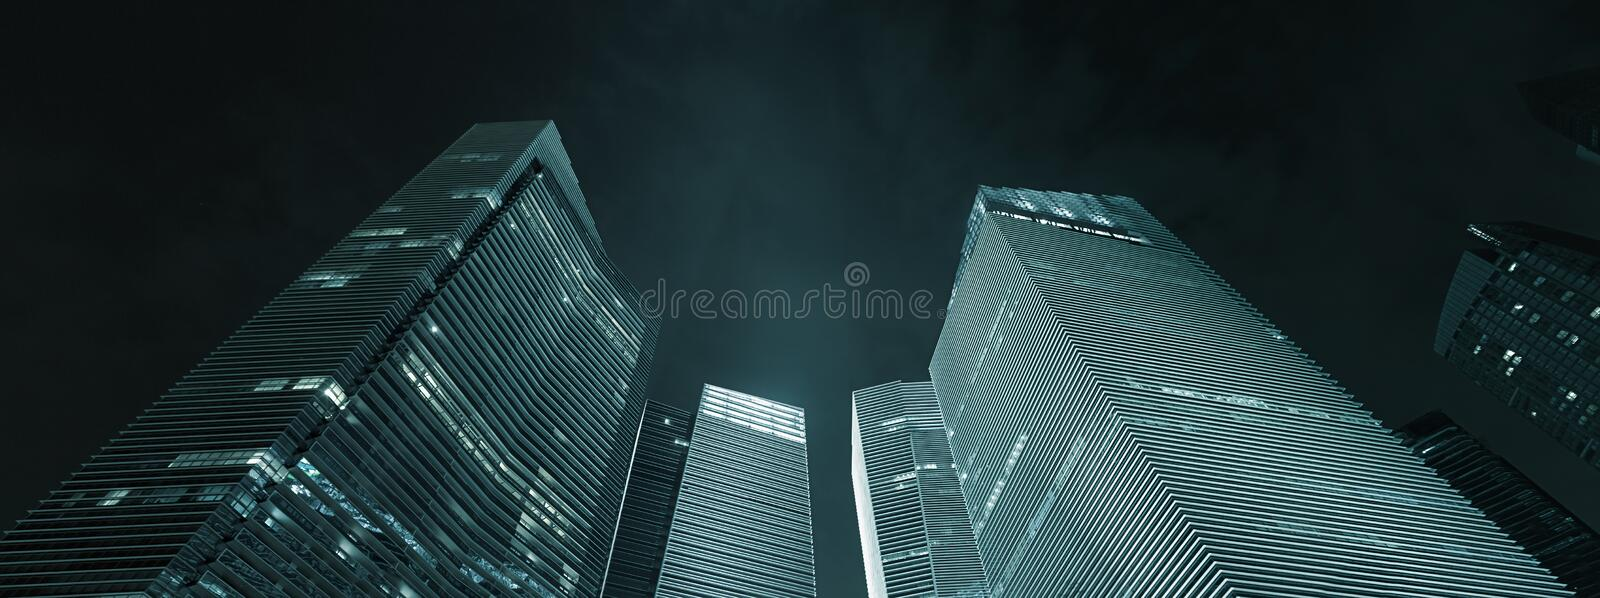 Office buildings exterior at night - modern business architecture. Office buildings exterior at night. Modern skyscrapers a sample of business architecture stock photography